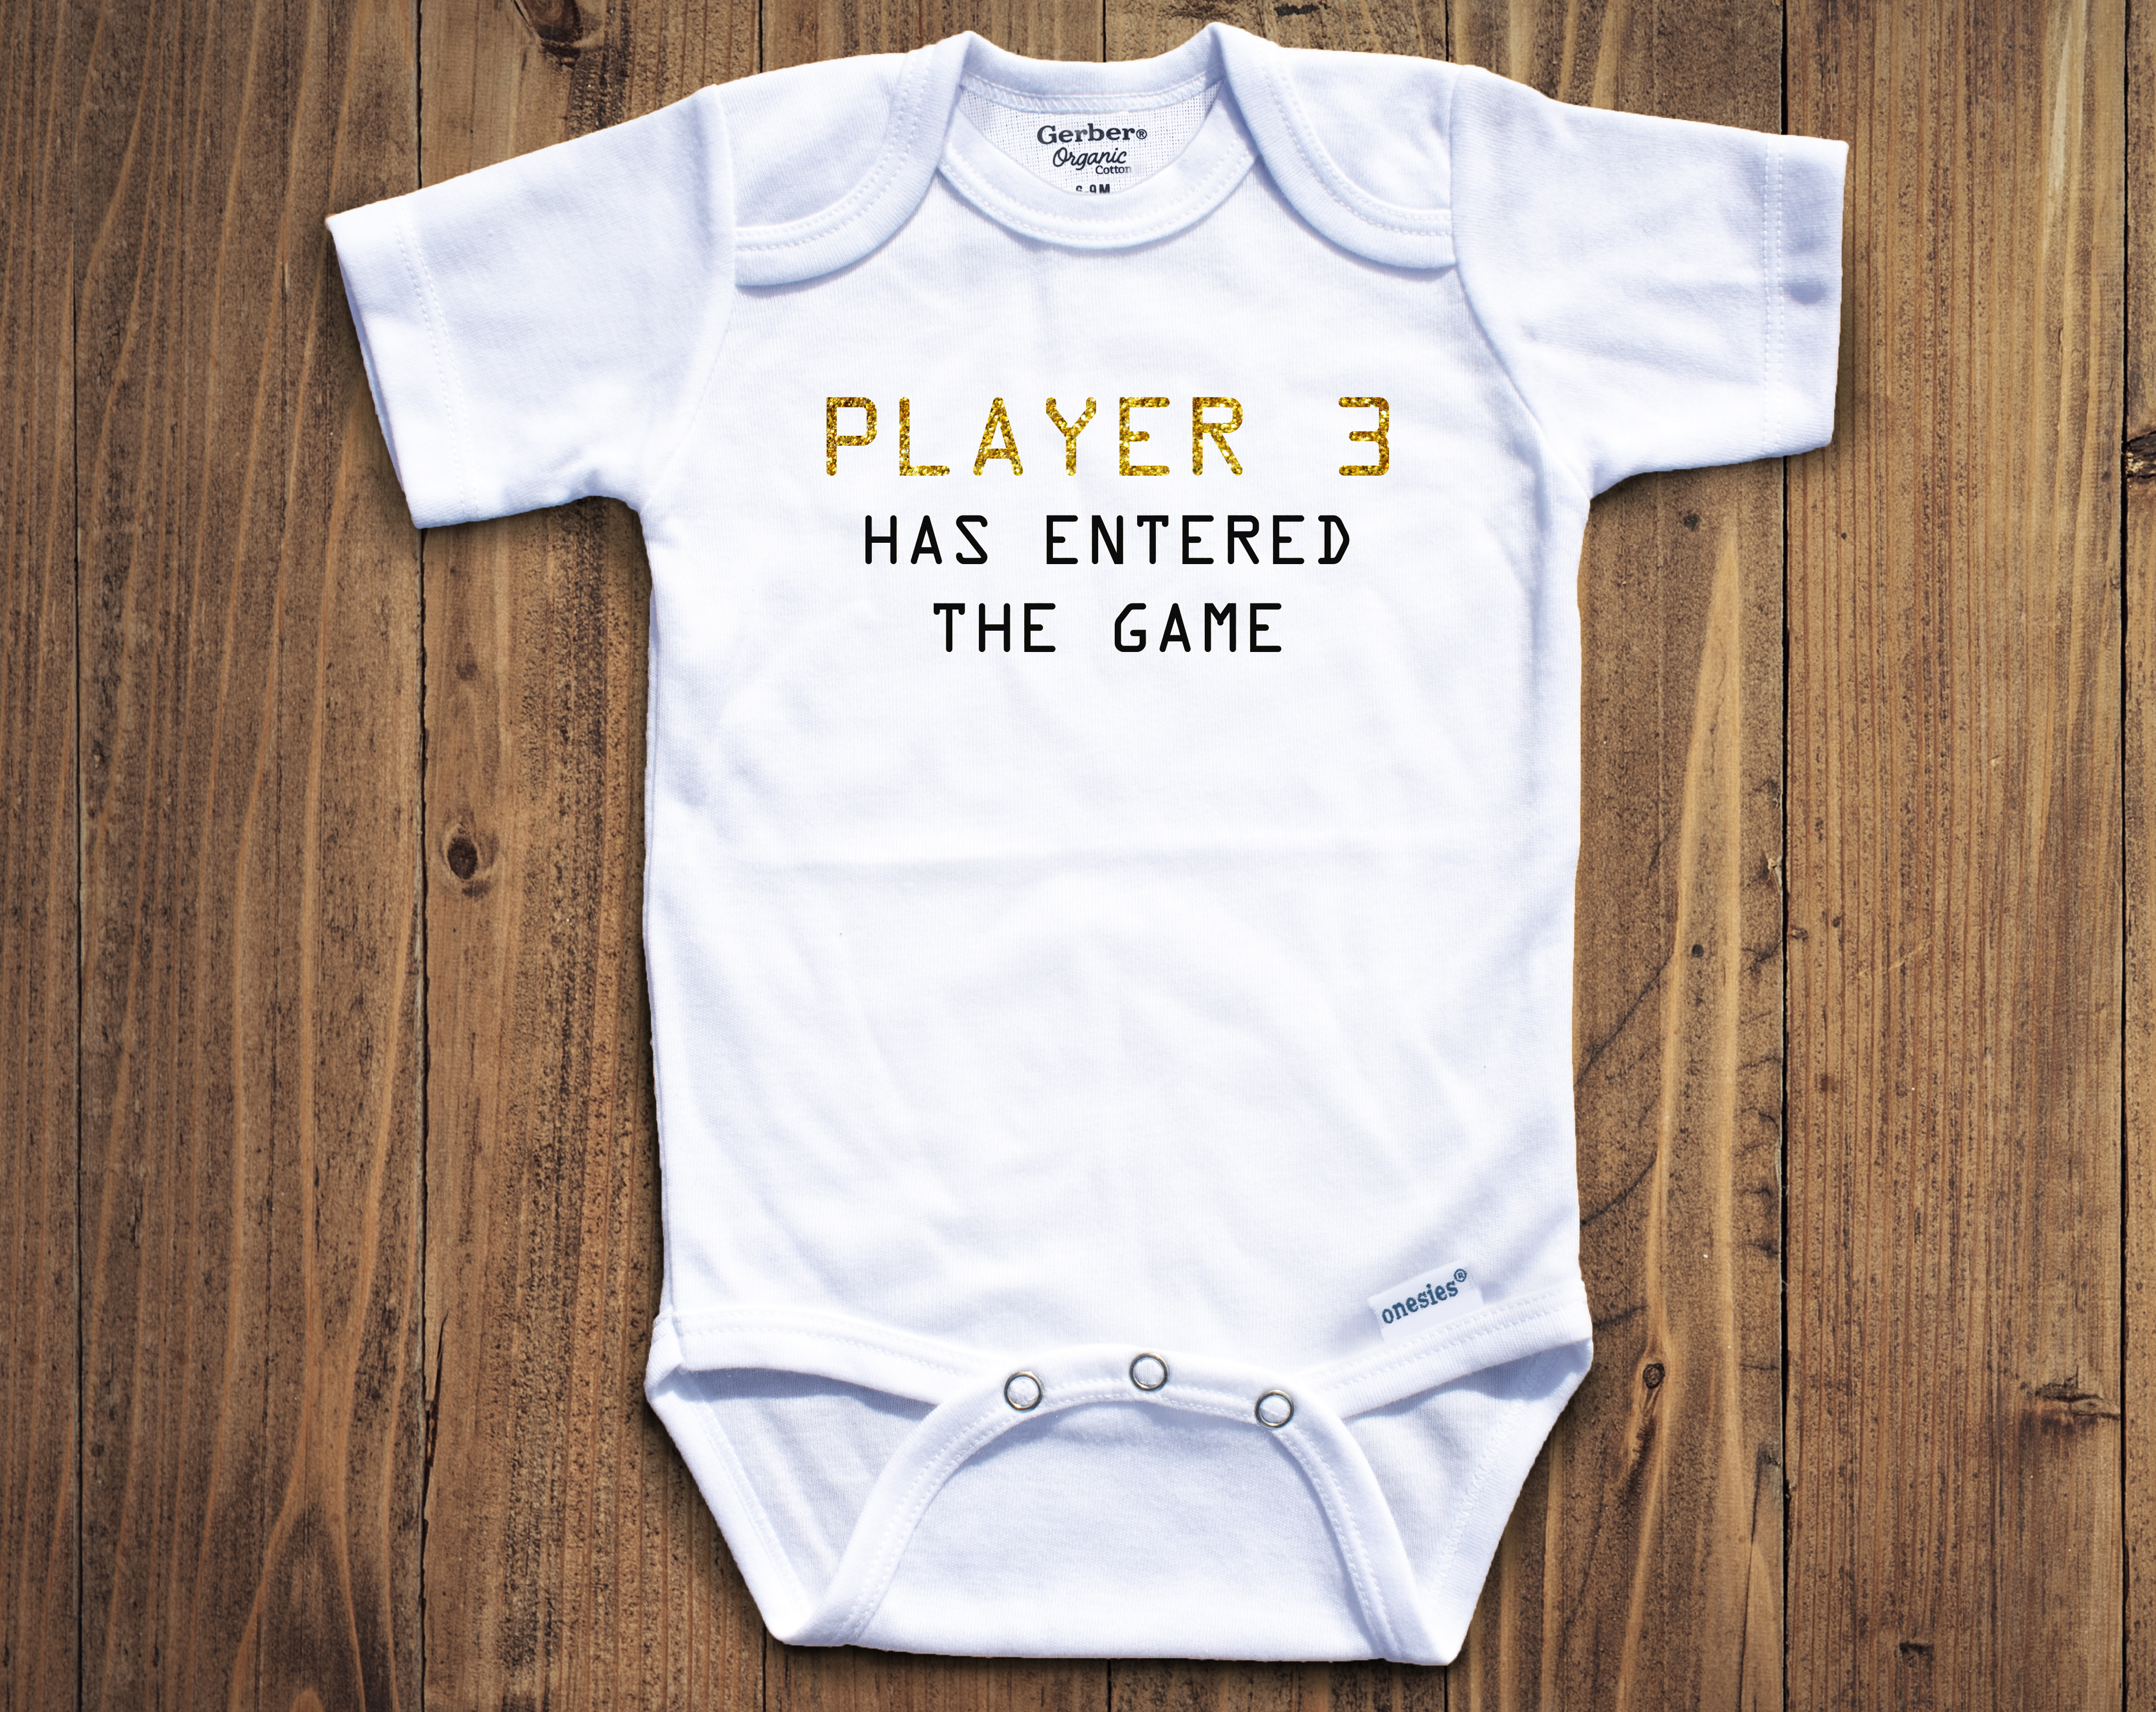 6a837cba443 Player 3 Has Entered the Game Onesie®